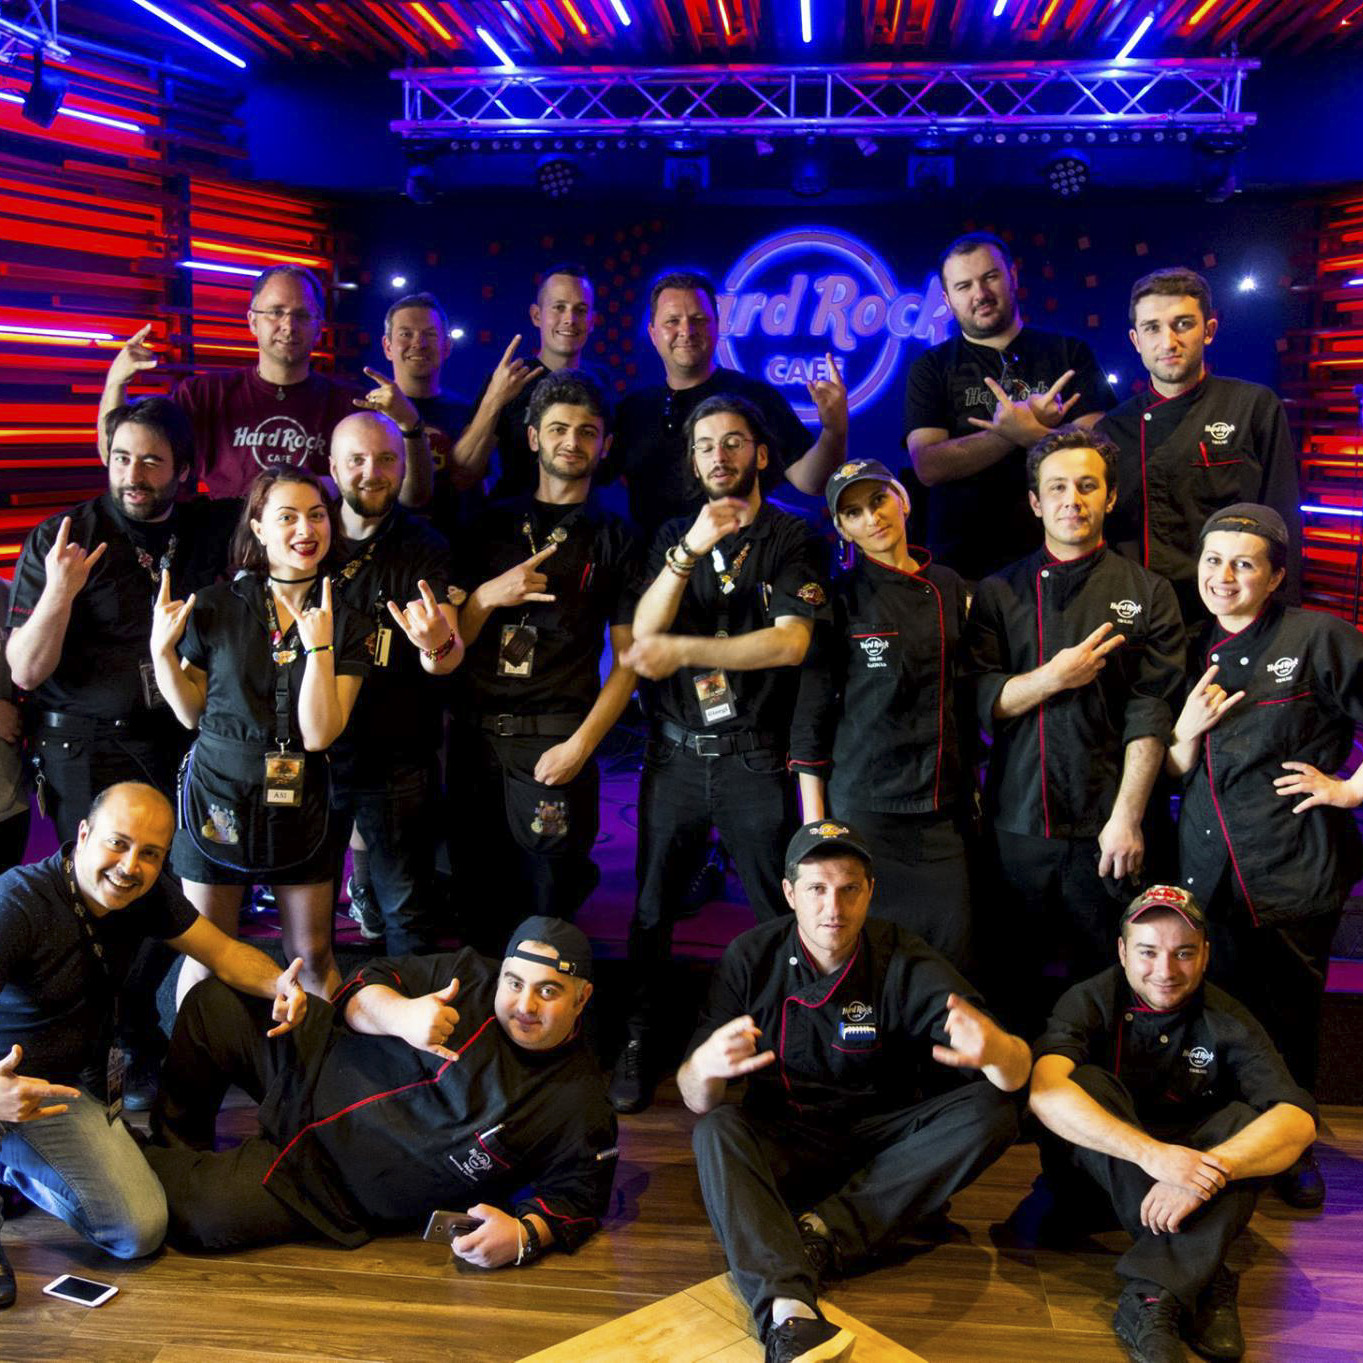 Hard Rock Cafe Tbilisi - Group picture with the staff